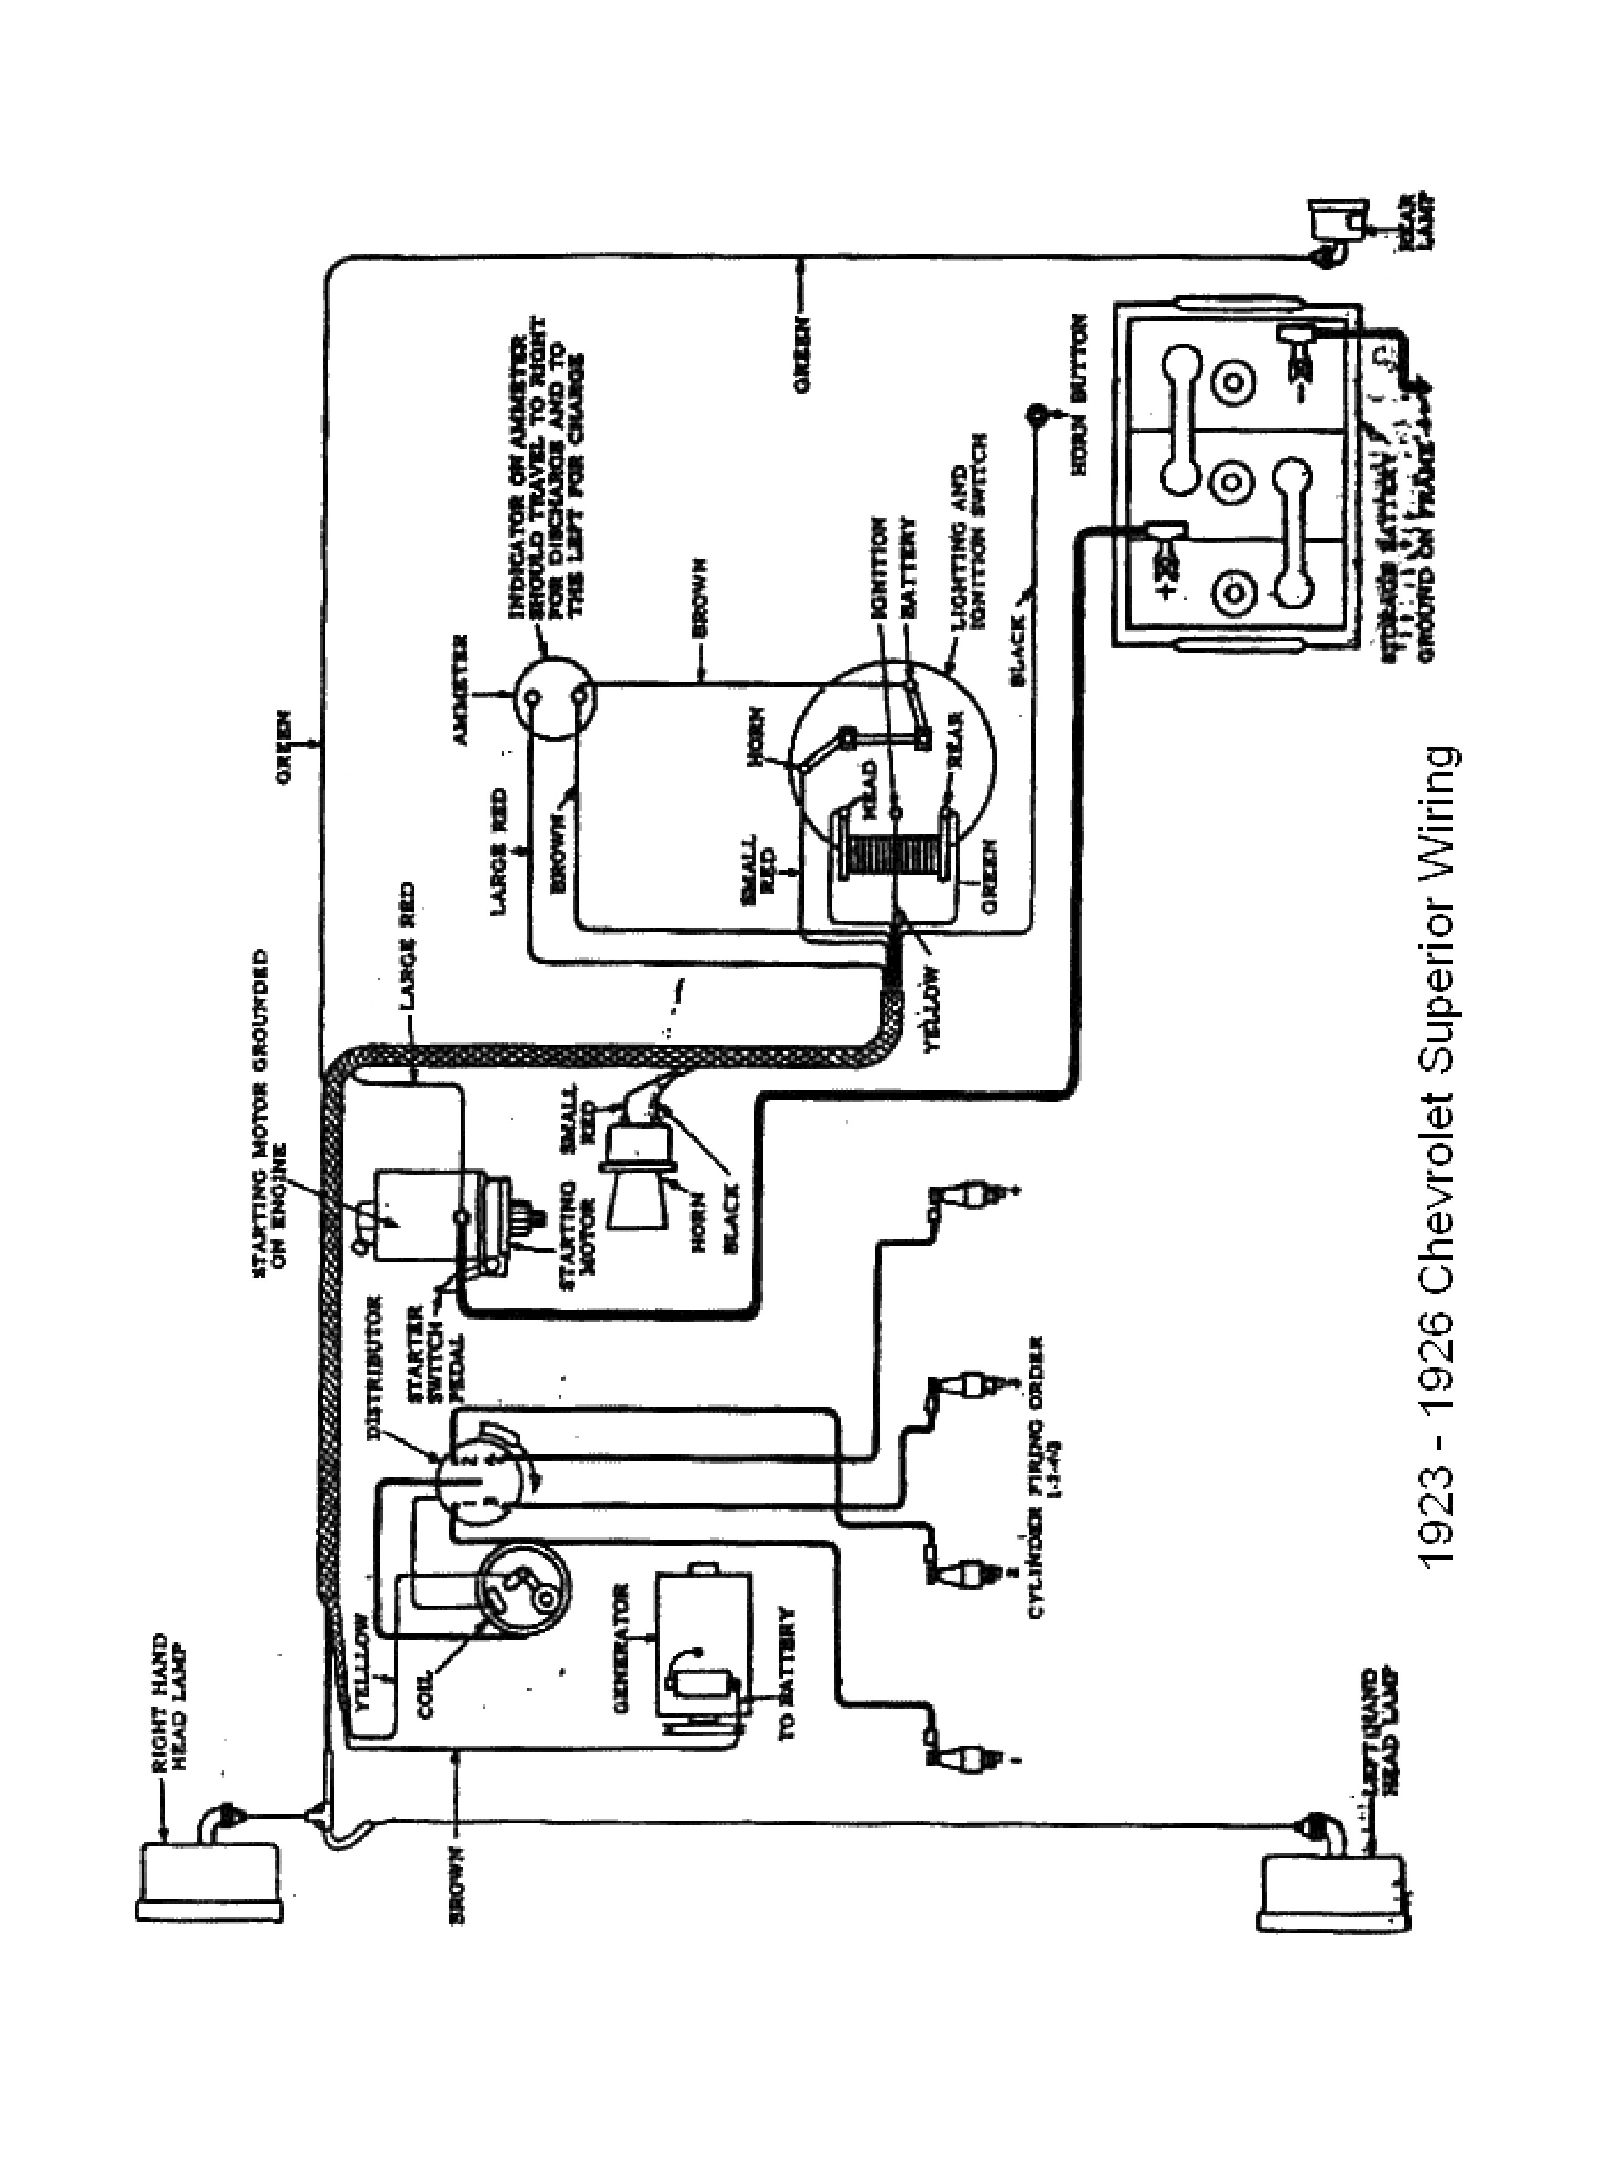 Buick Wiring Diagram Of 1923 1924 Model 4 Delco Equipment